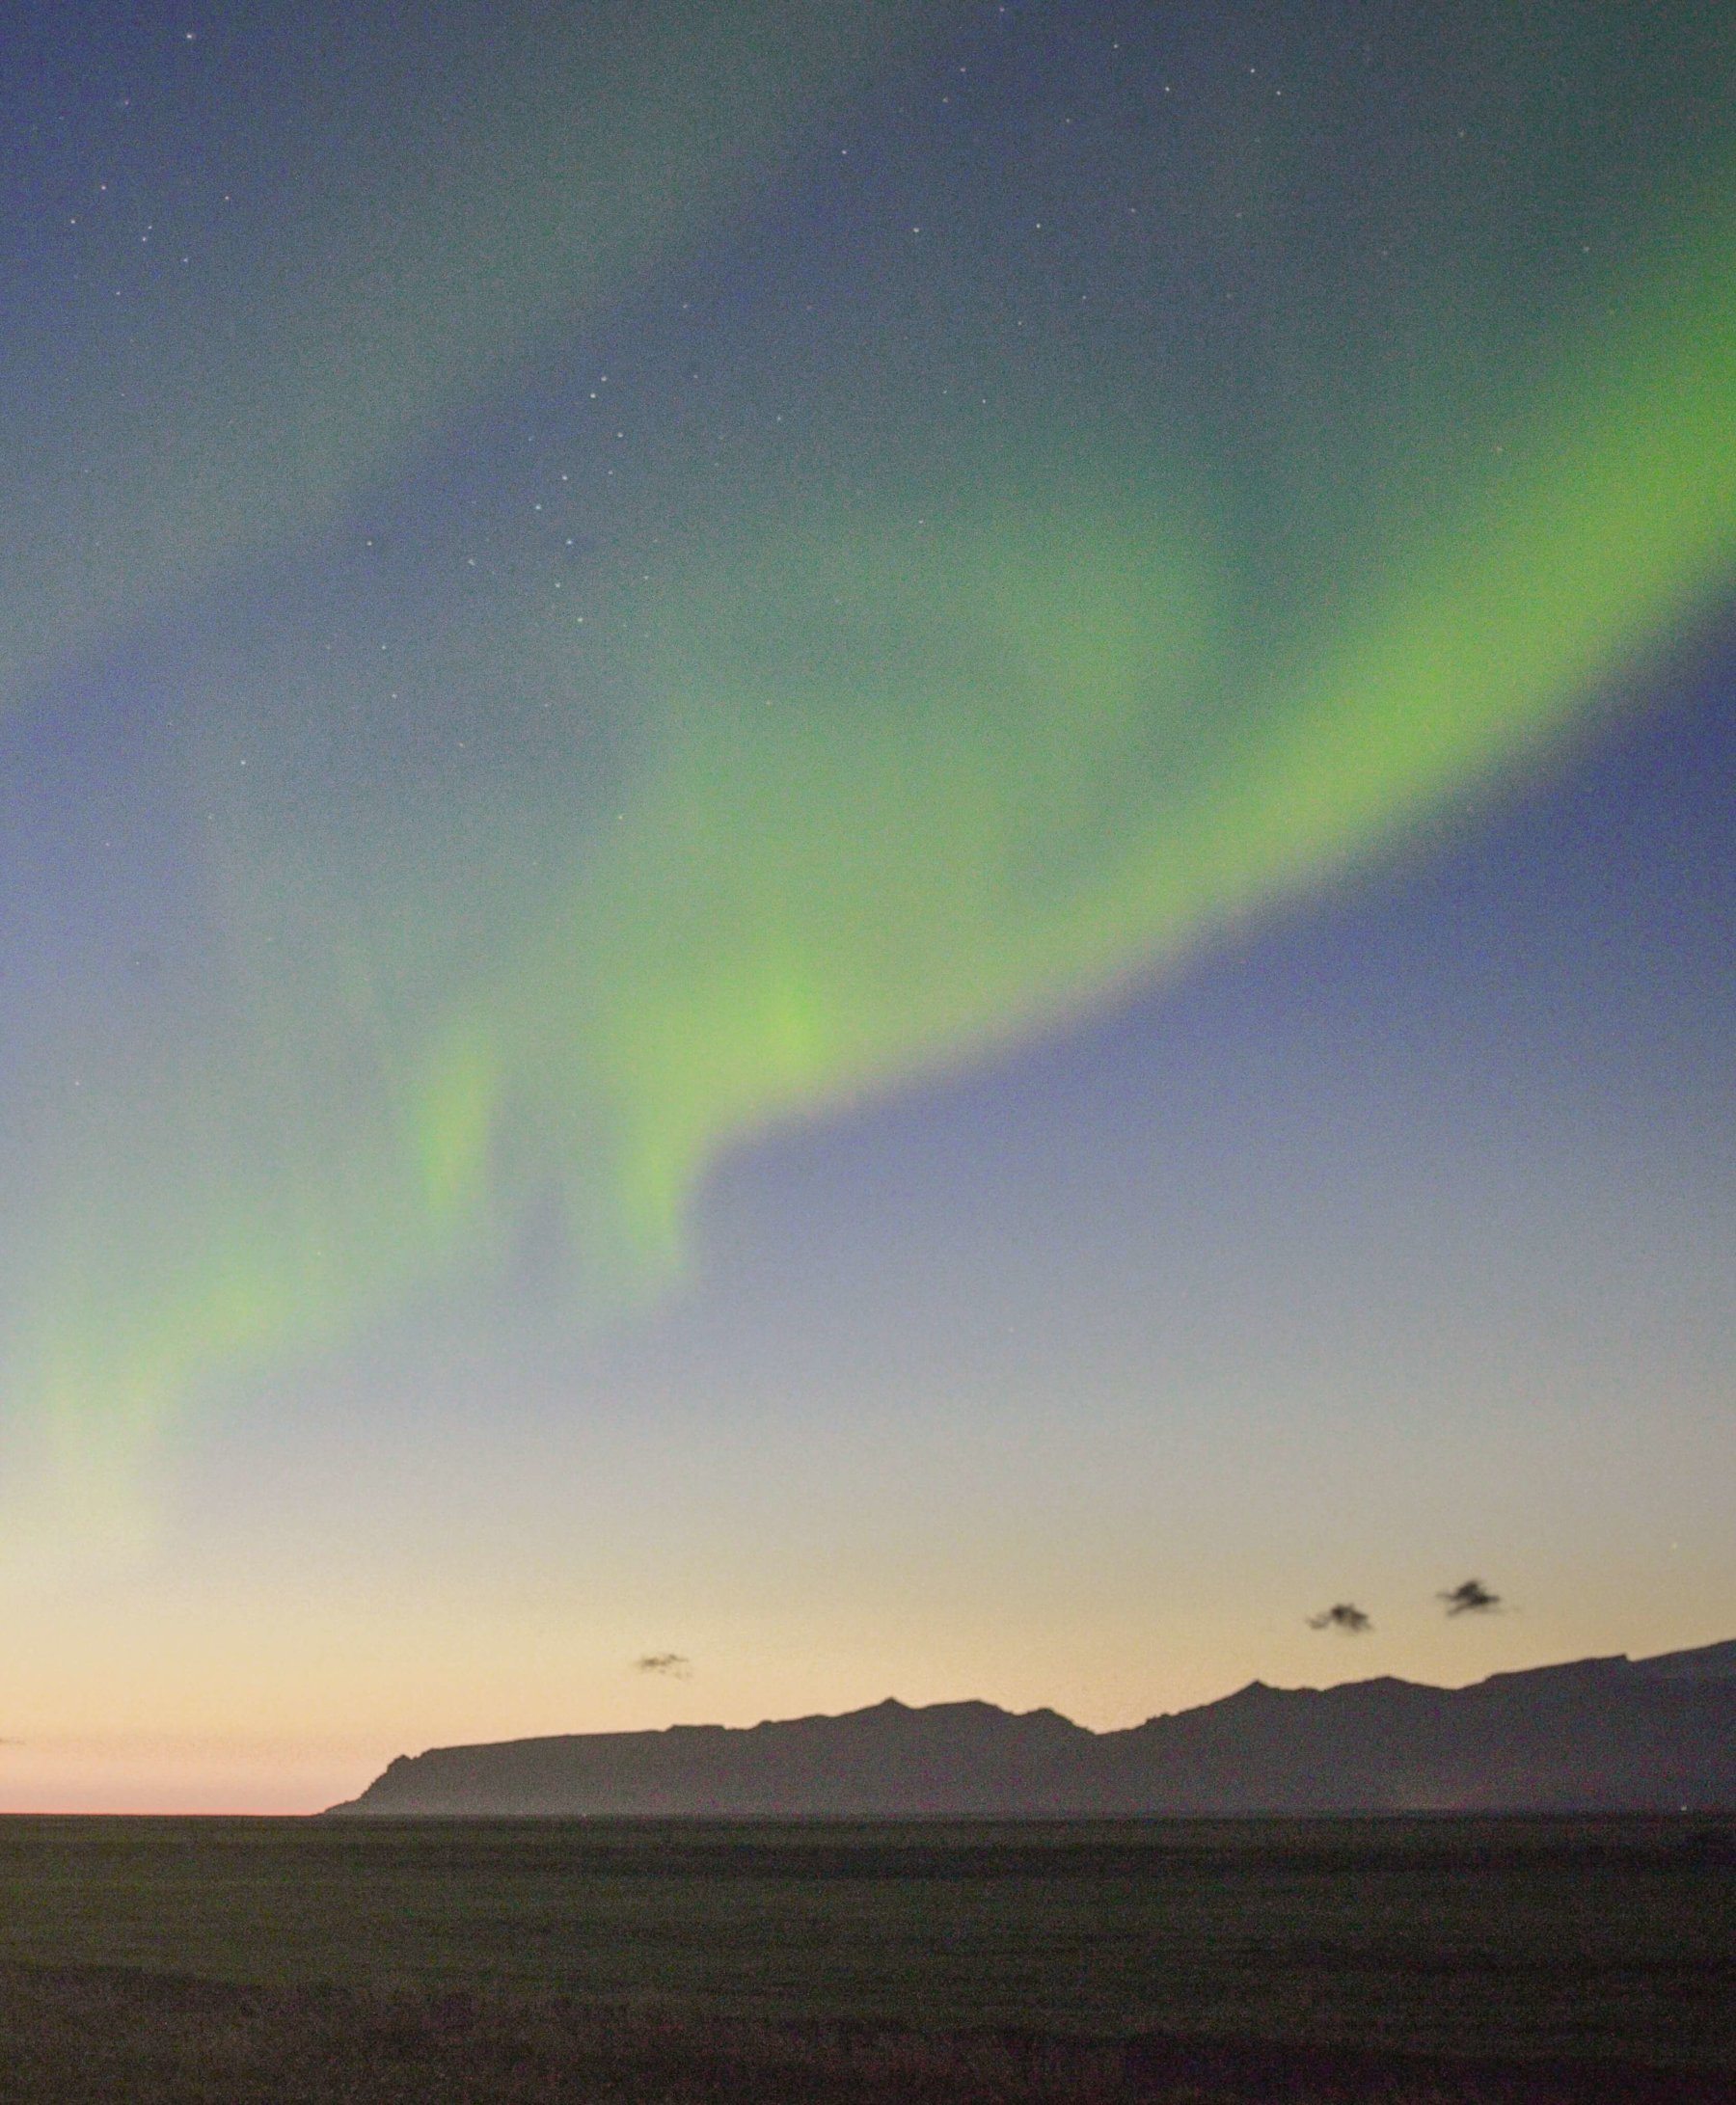 The Northern Lights swirling through the sky above distant mountains and a golden glow